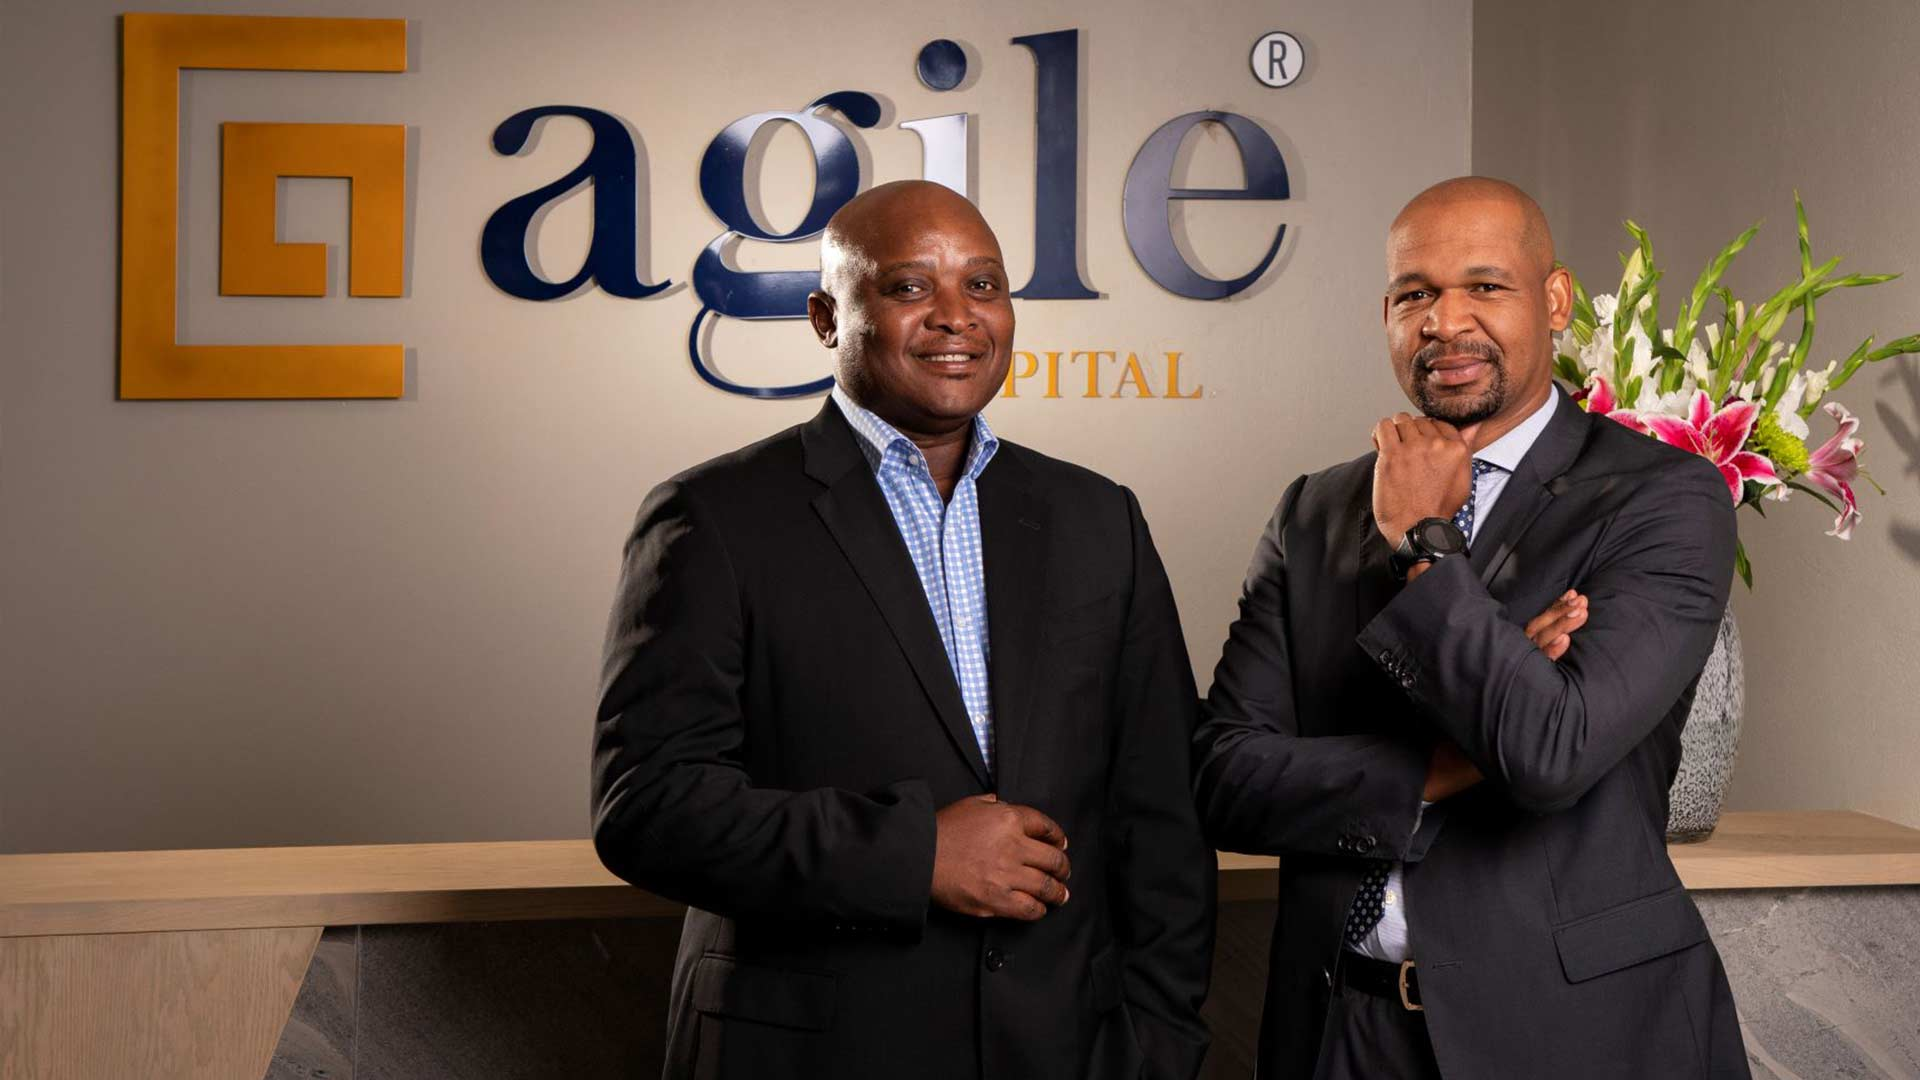 PMG and Agile Capital transformation and empowerment partners